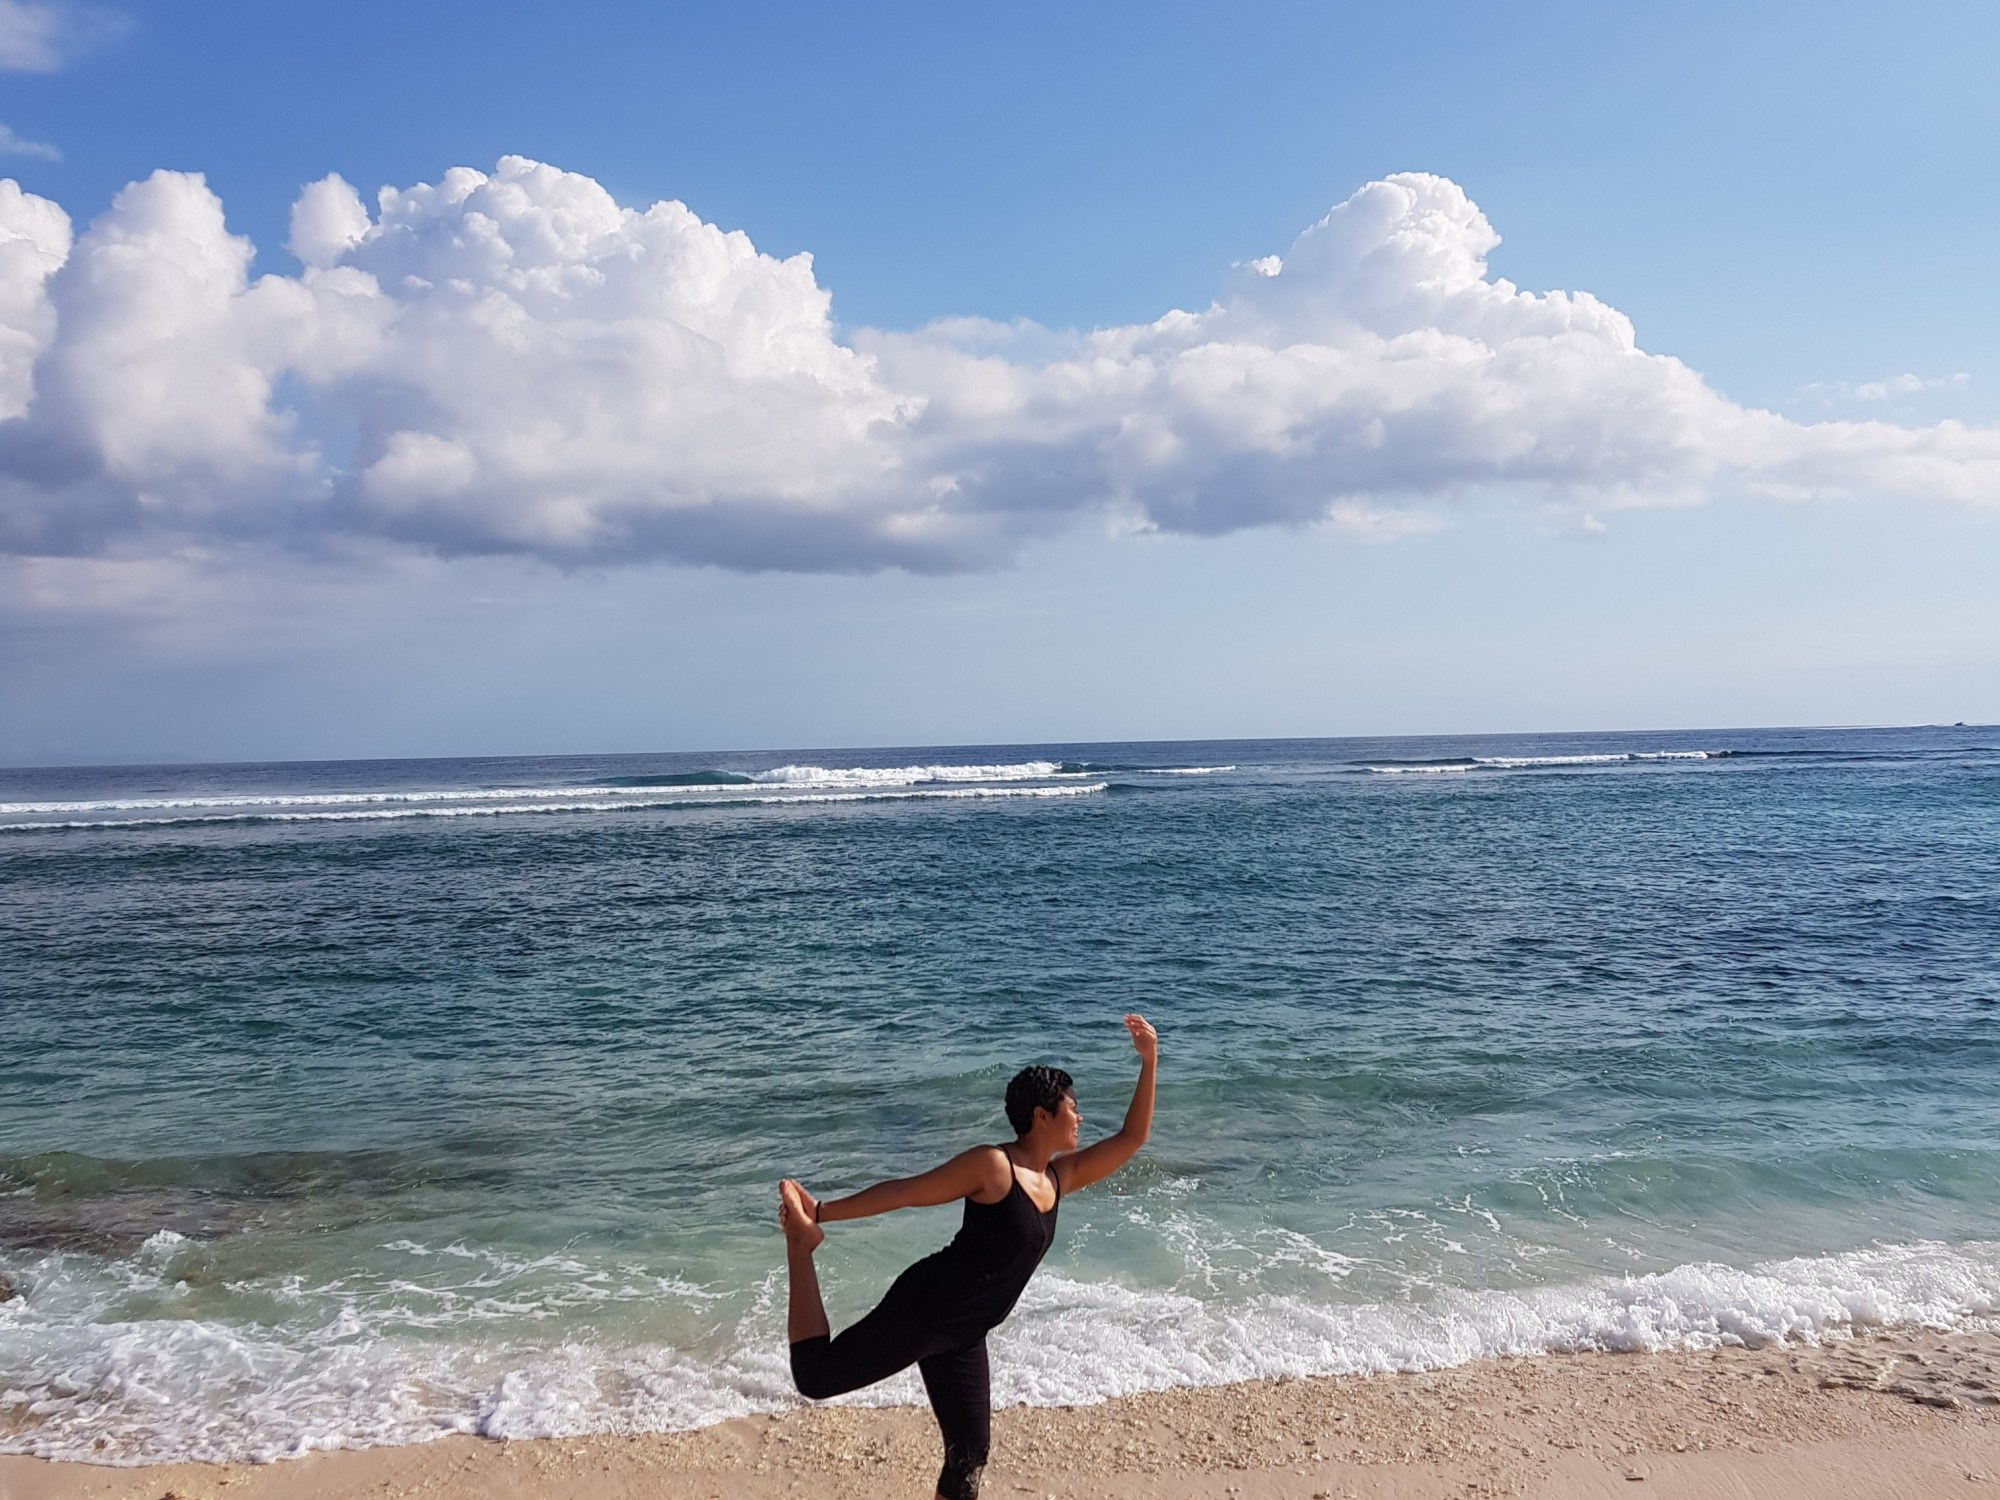 Dancer's pose on Gili Meno Island in Indonesia